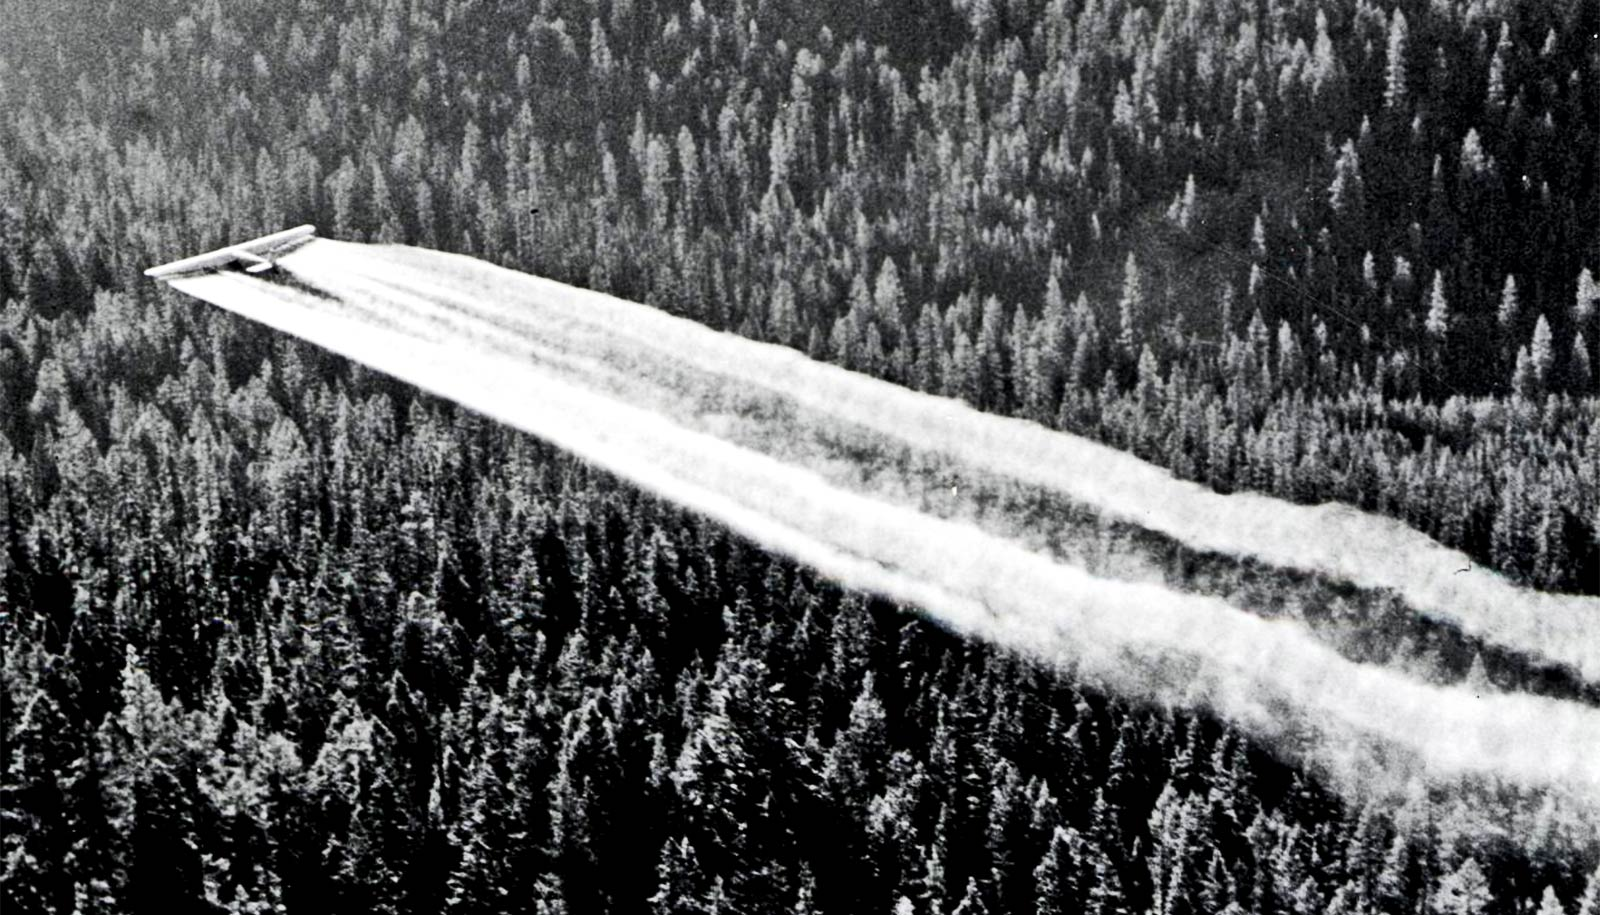 Nazi scientists created an alternative to DDT pesticide